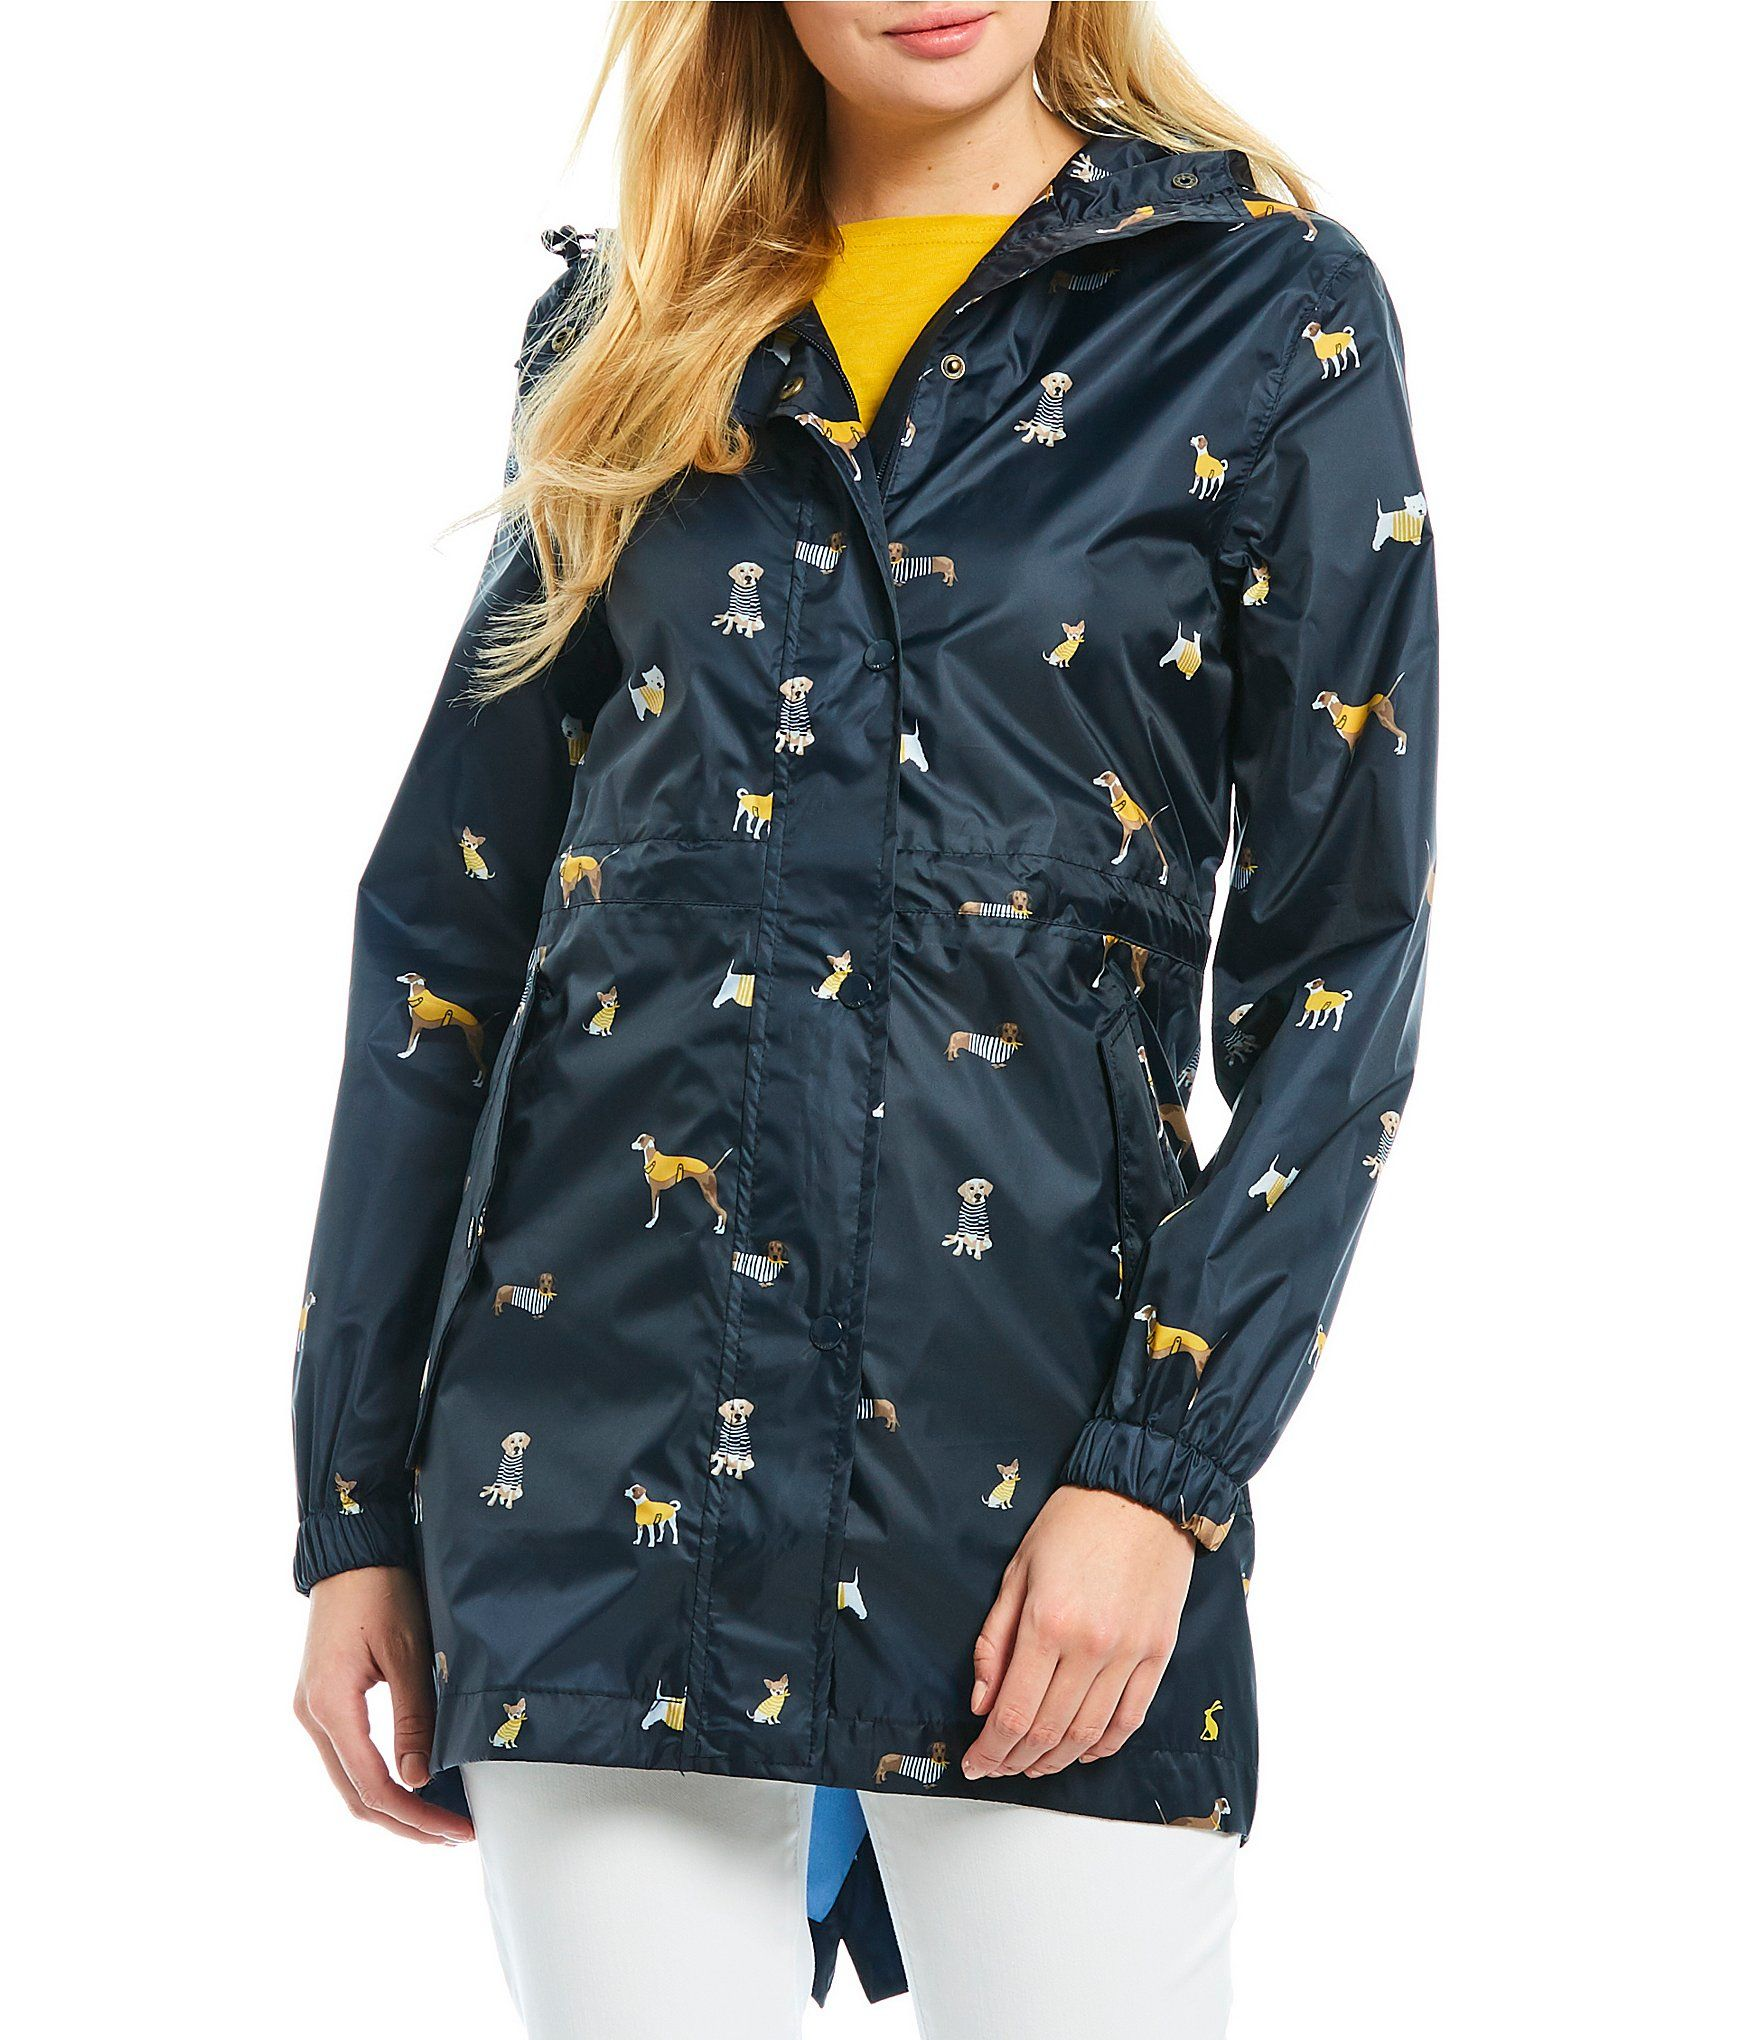 Shop For Joules Golightly Dog Print Button Front Rain Jacket At Dillards Com Visit Dillards Com To Find Clothing Access Print Buttons Jackets Waterproof Coat [ 2040 x 1760 Pixel ]